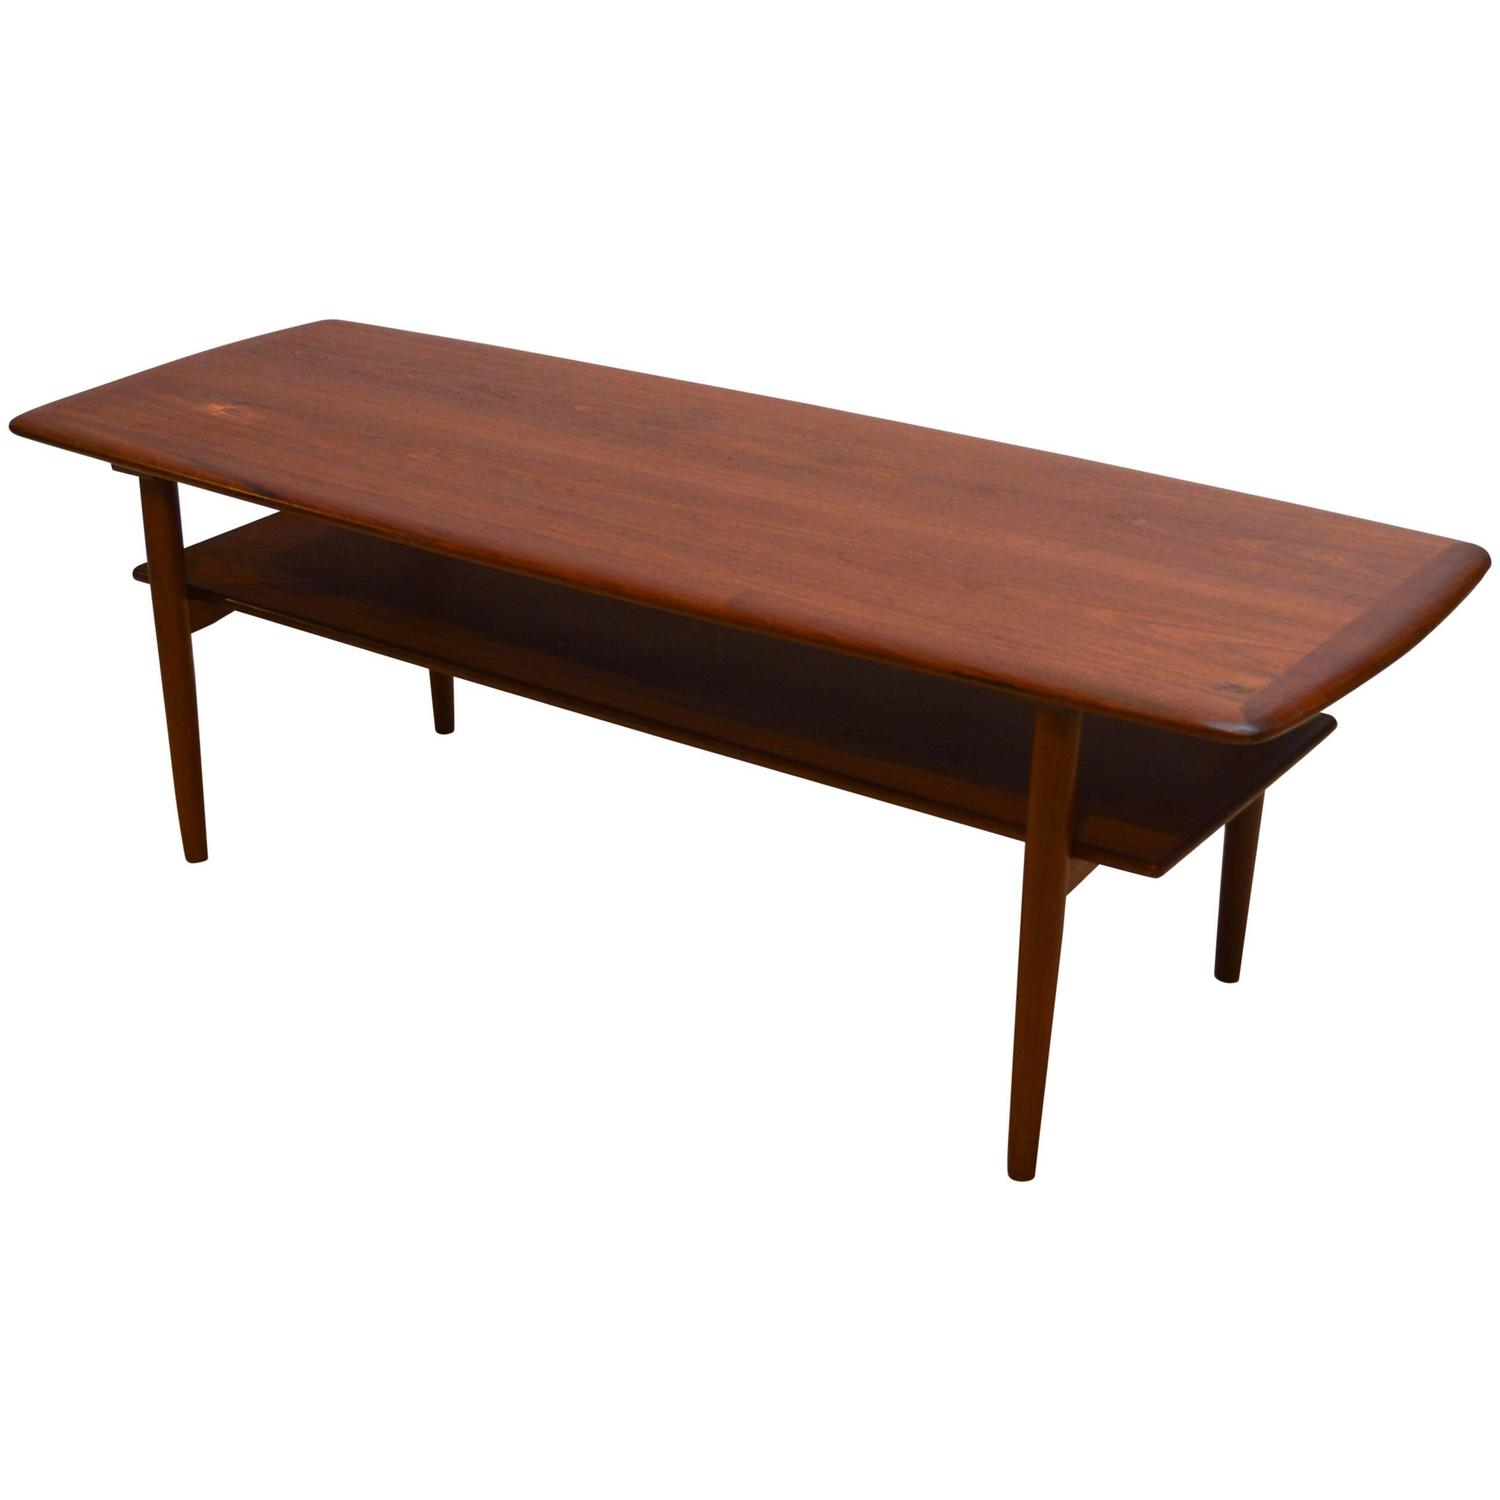 Scandinavian Teak Coffee Table: Danish Modern Teak Coffee Table With Shelf At 1stdibs